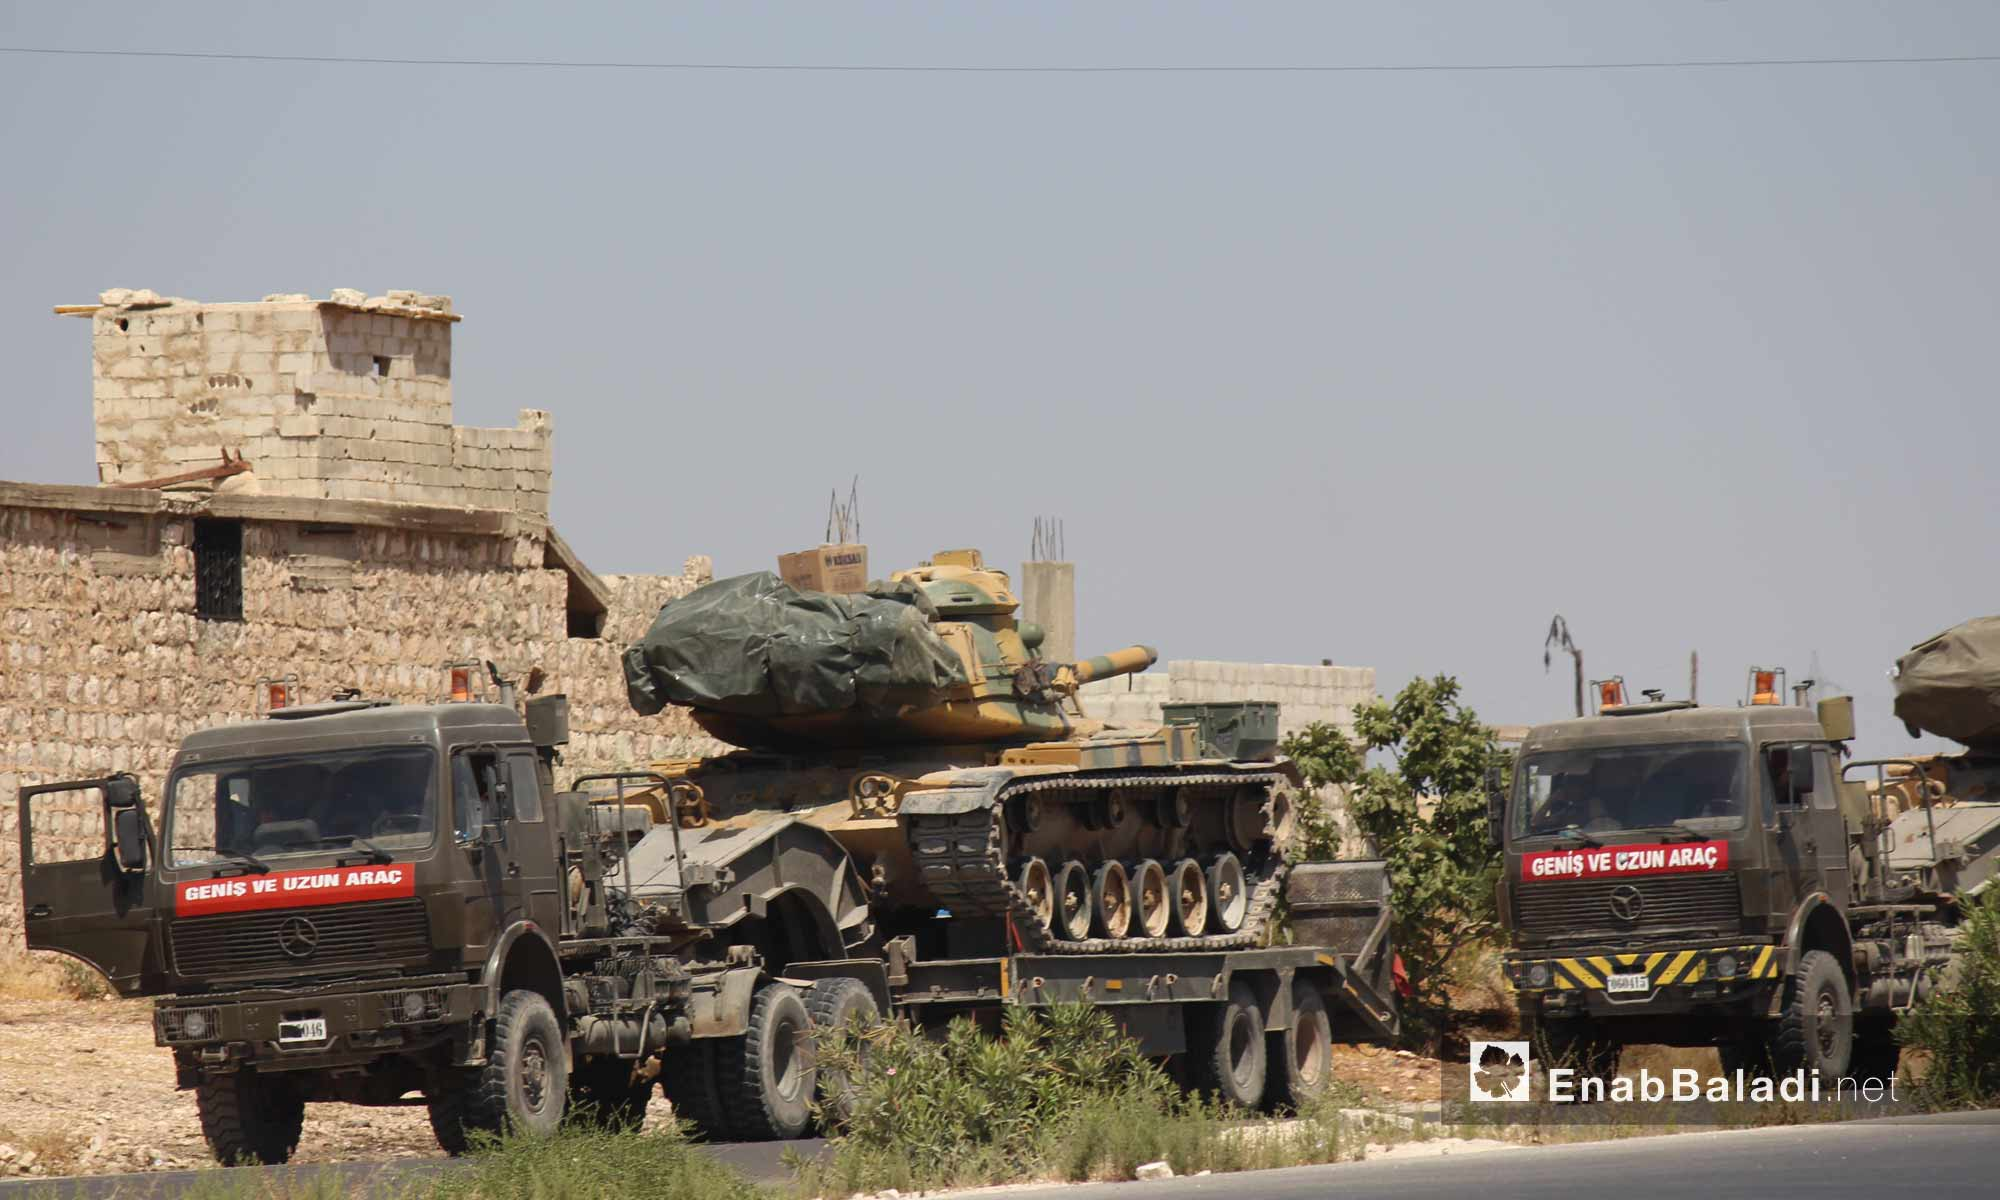 A Turkish military column stopping near Maar Hattat village to the south of Maarrat al-Numan in Idlib after being targeted by the Syrian regime forces. 19 August,2019 (Enab Baladi)